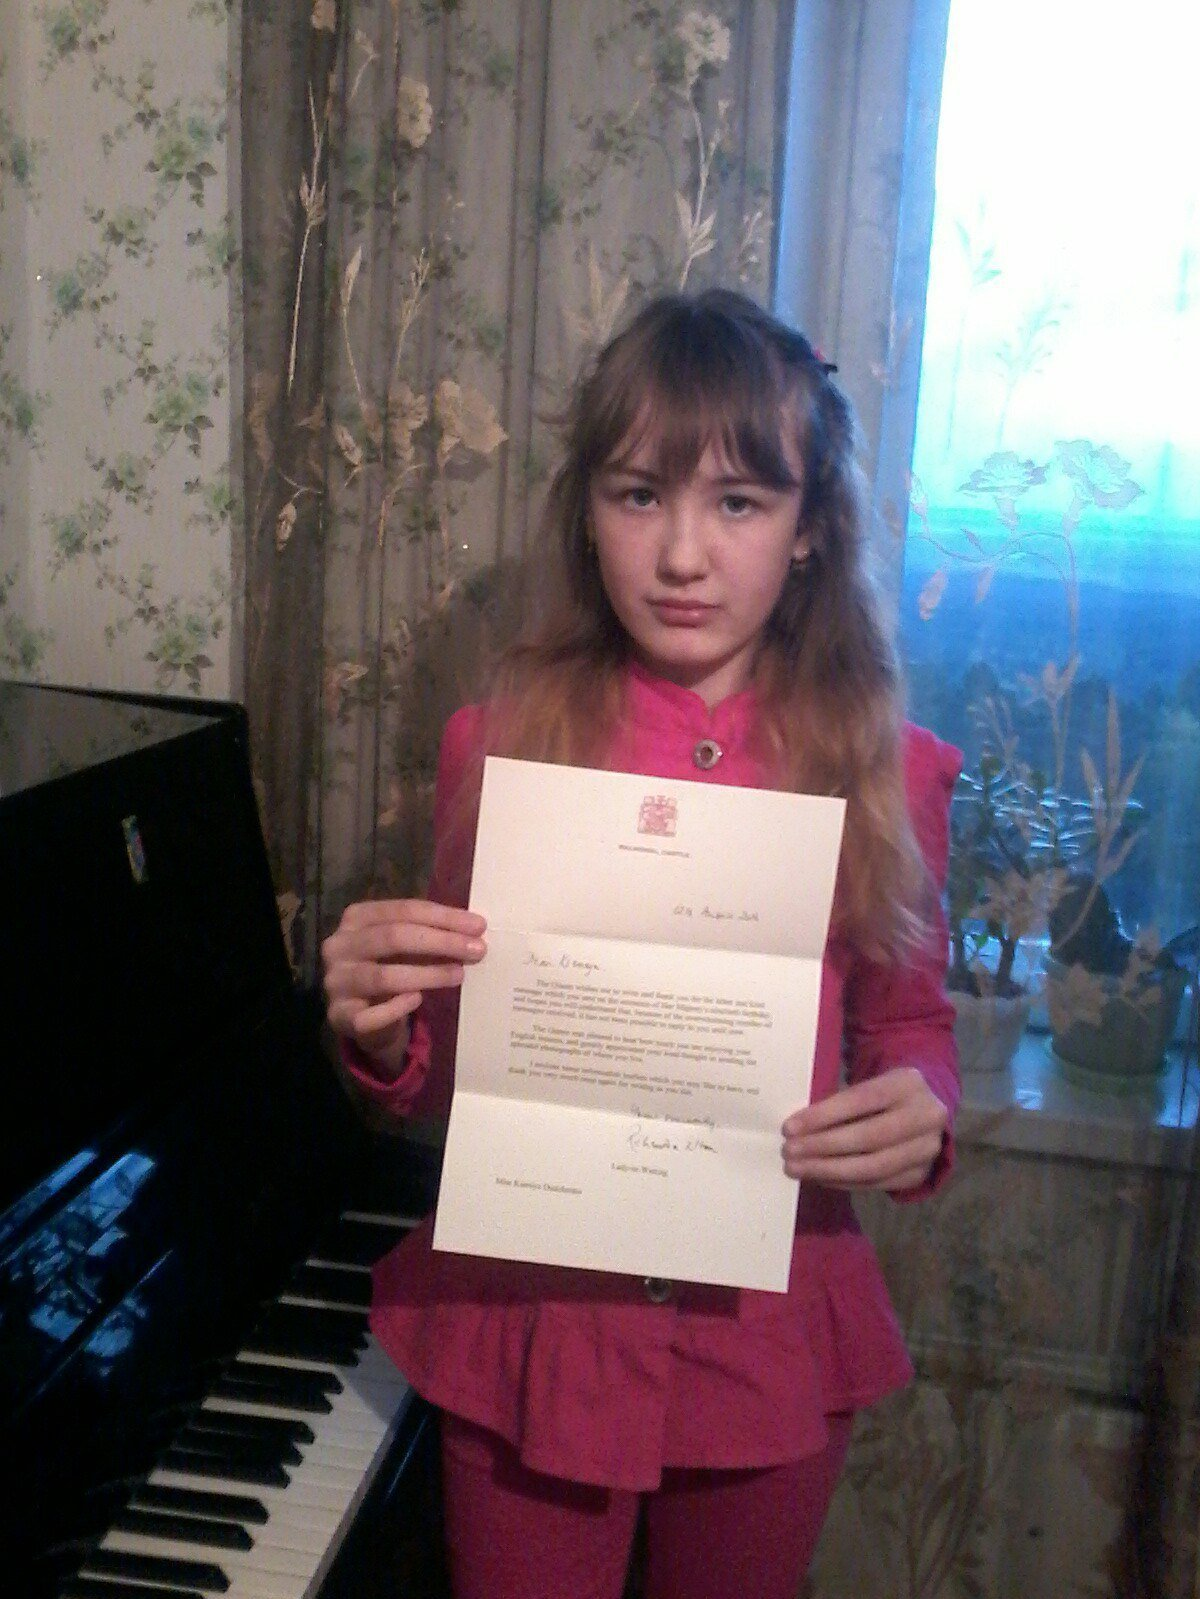 Kseniya Dudchenko received a reply from the Queen of Great Britain Elizabeth II.